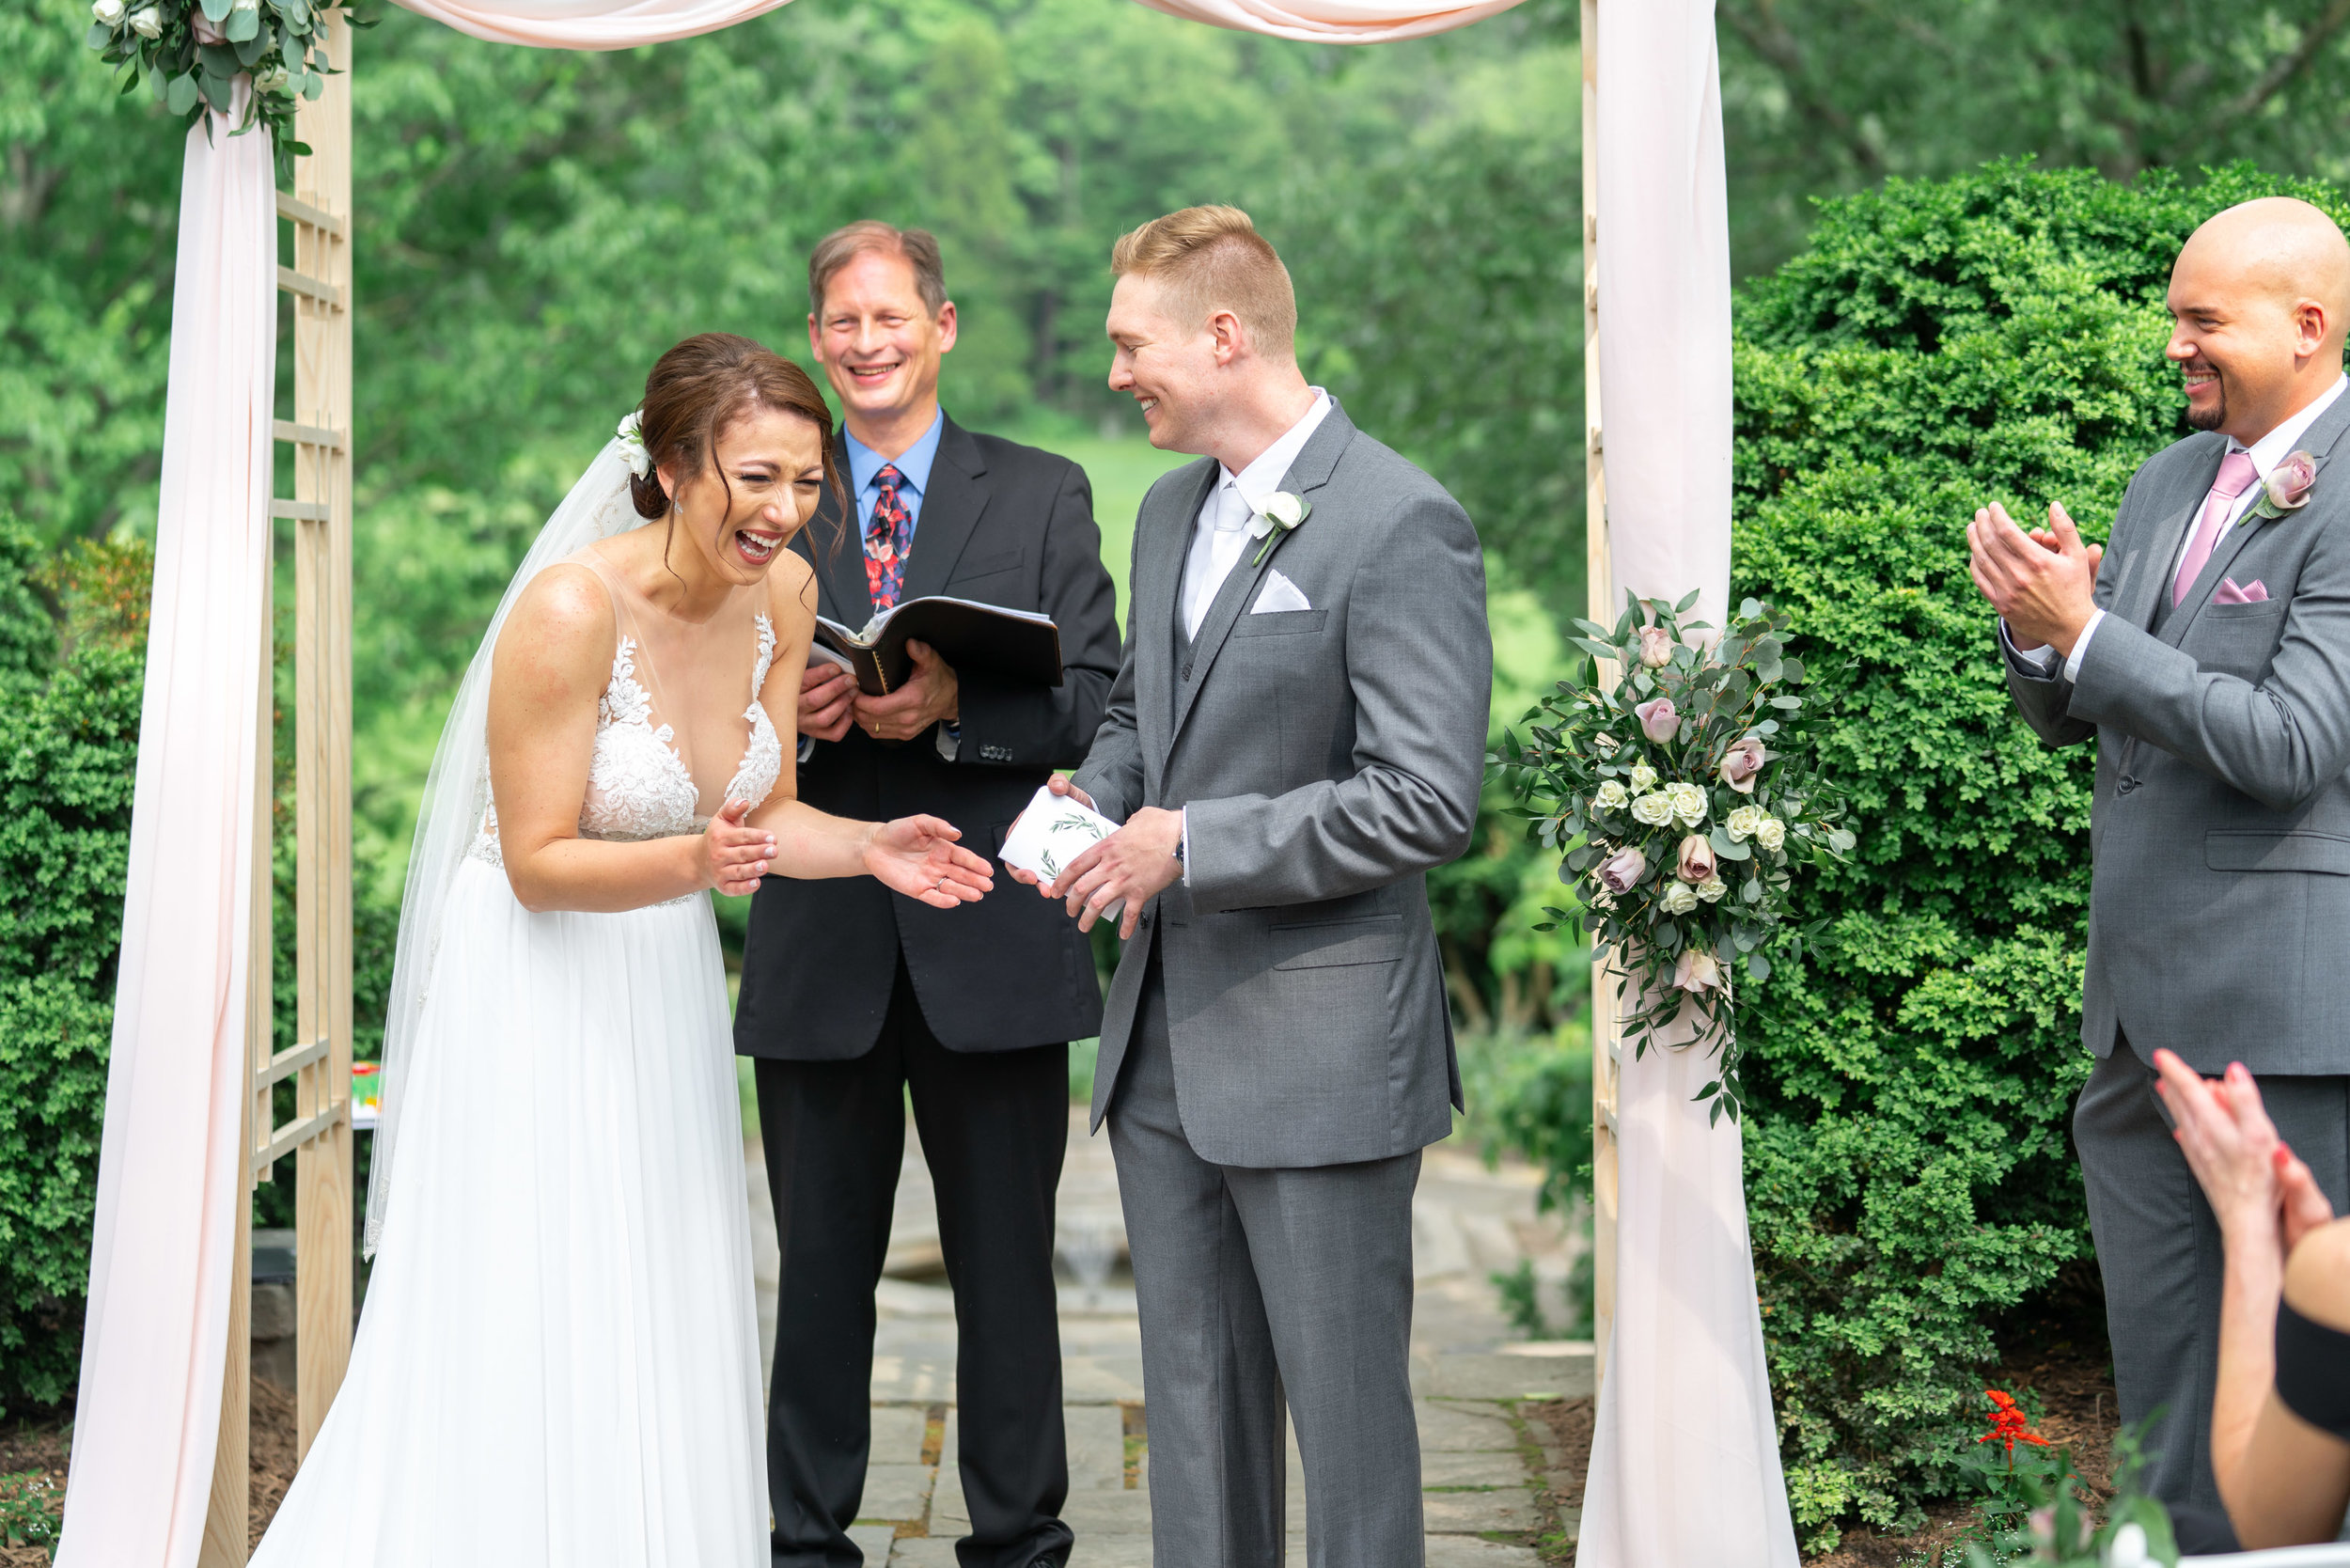 Bride and groom laughing during vows at Glenview Mansion wedding photography